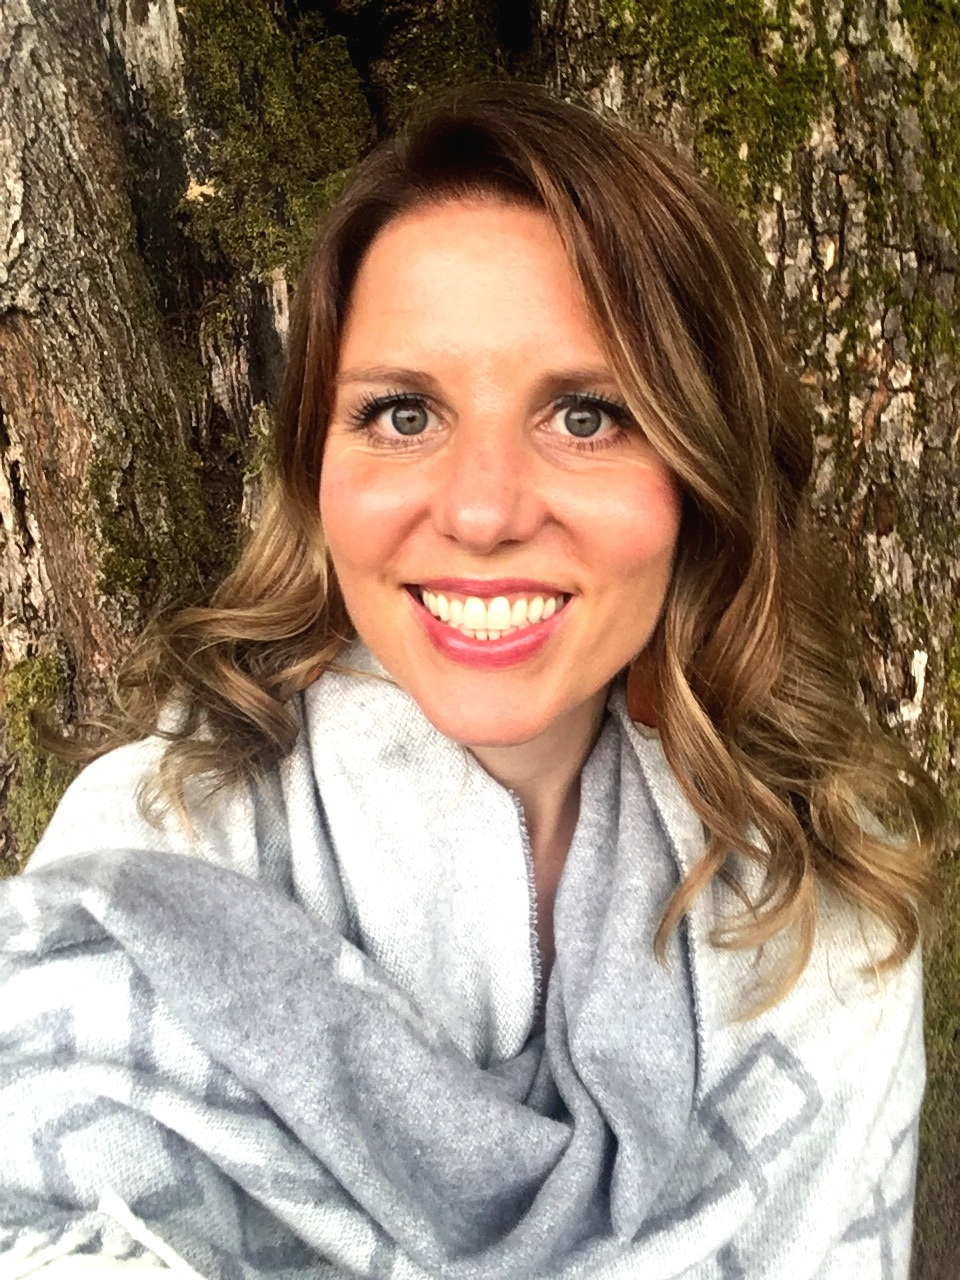 JAMIE ABENROTH, Master's of Counseling Psychology, AASECT Certified Sex Therapist, Licensed Mental Health Therapist (WA State), National Certified Counselor (NBCC), Certified Integrated Intimacy Practitioner (NWIOI)